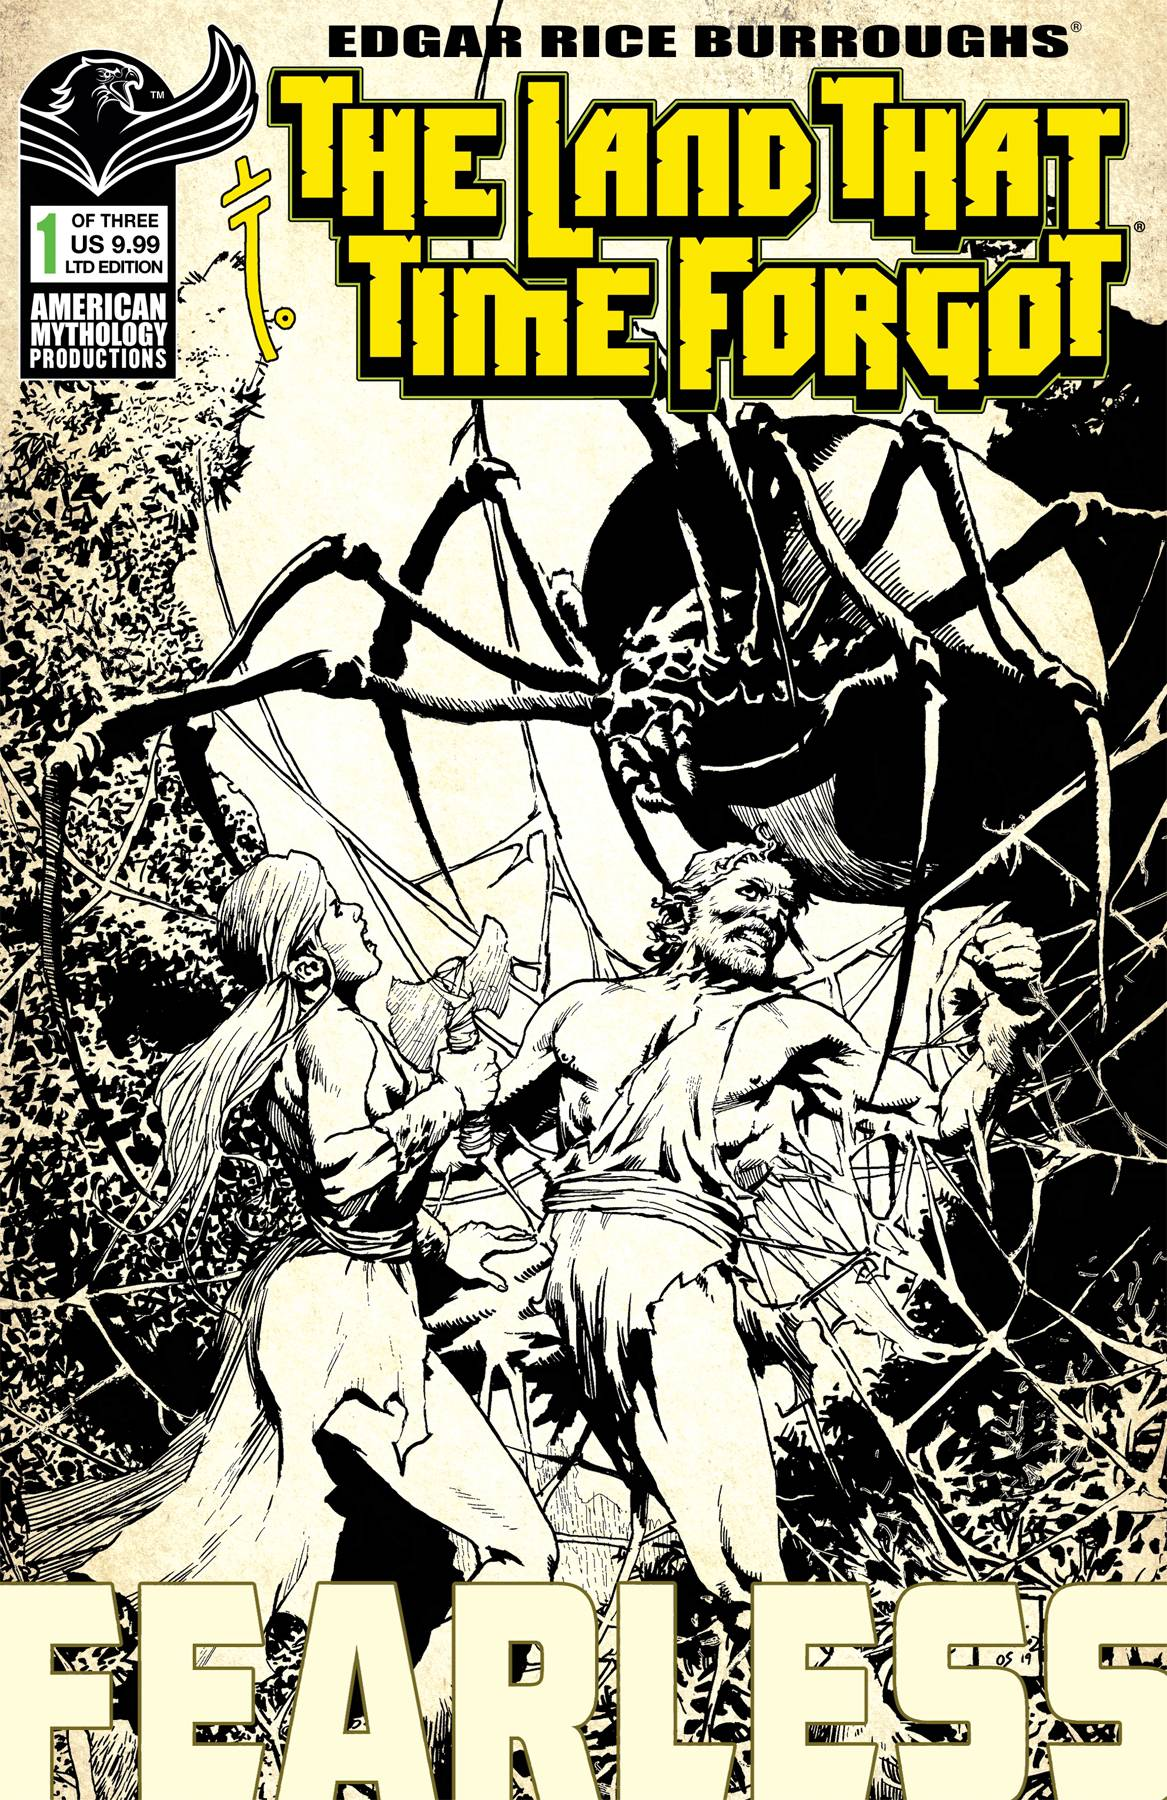 LAND THAT TIME FORGOT FEARLESS #1 CVR C MARTINEZ (RES)